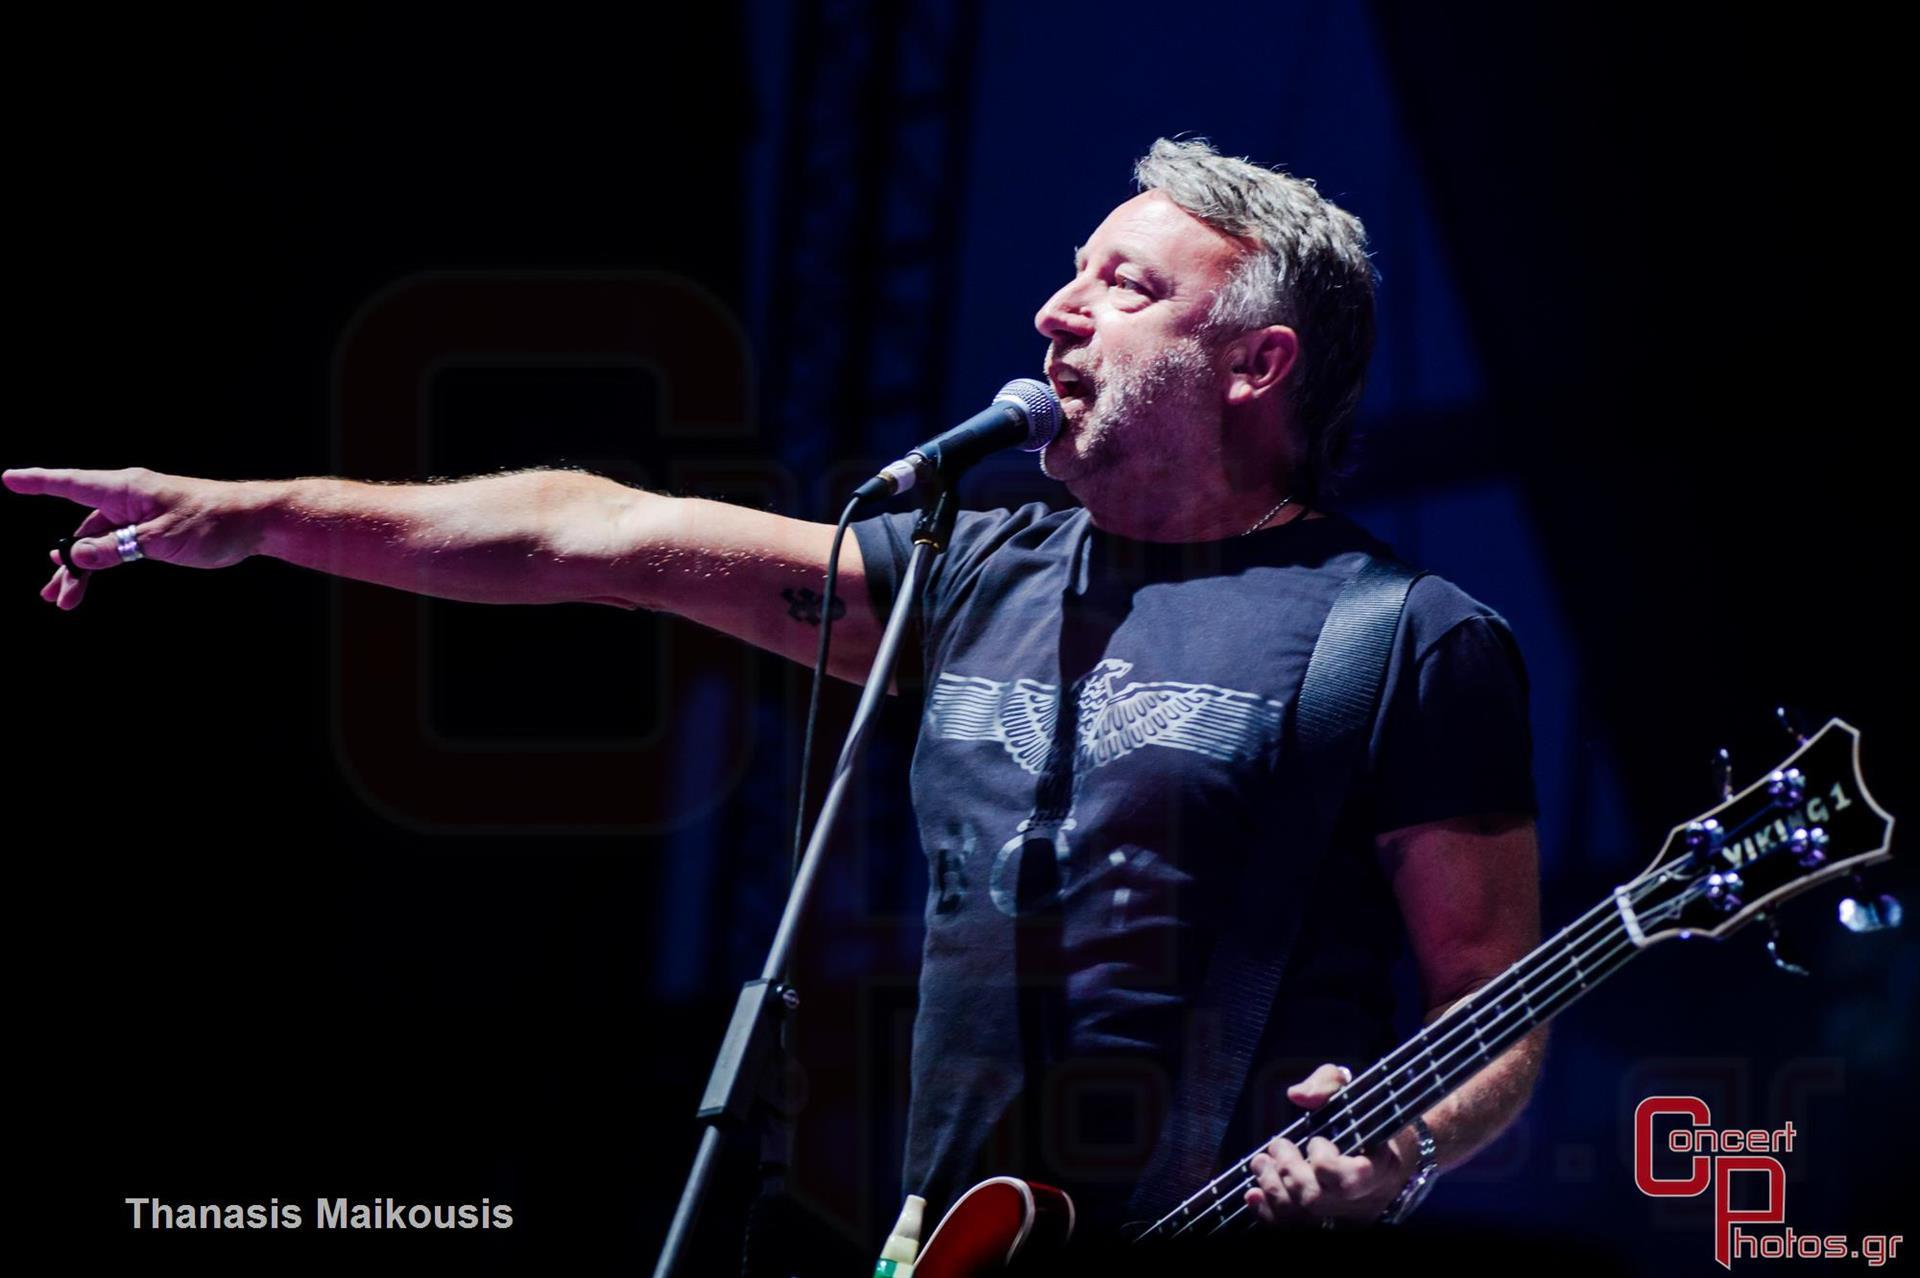 Peter Hook & The Light -Peter Hook & The Light Ejekt 2013 photographer: Thanasis Maikousis - concertphotos_-9274